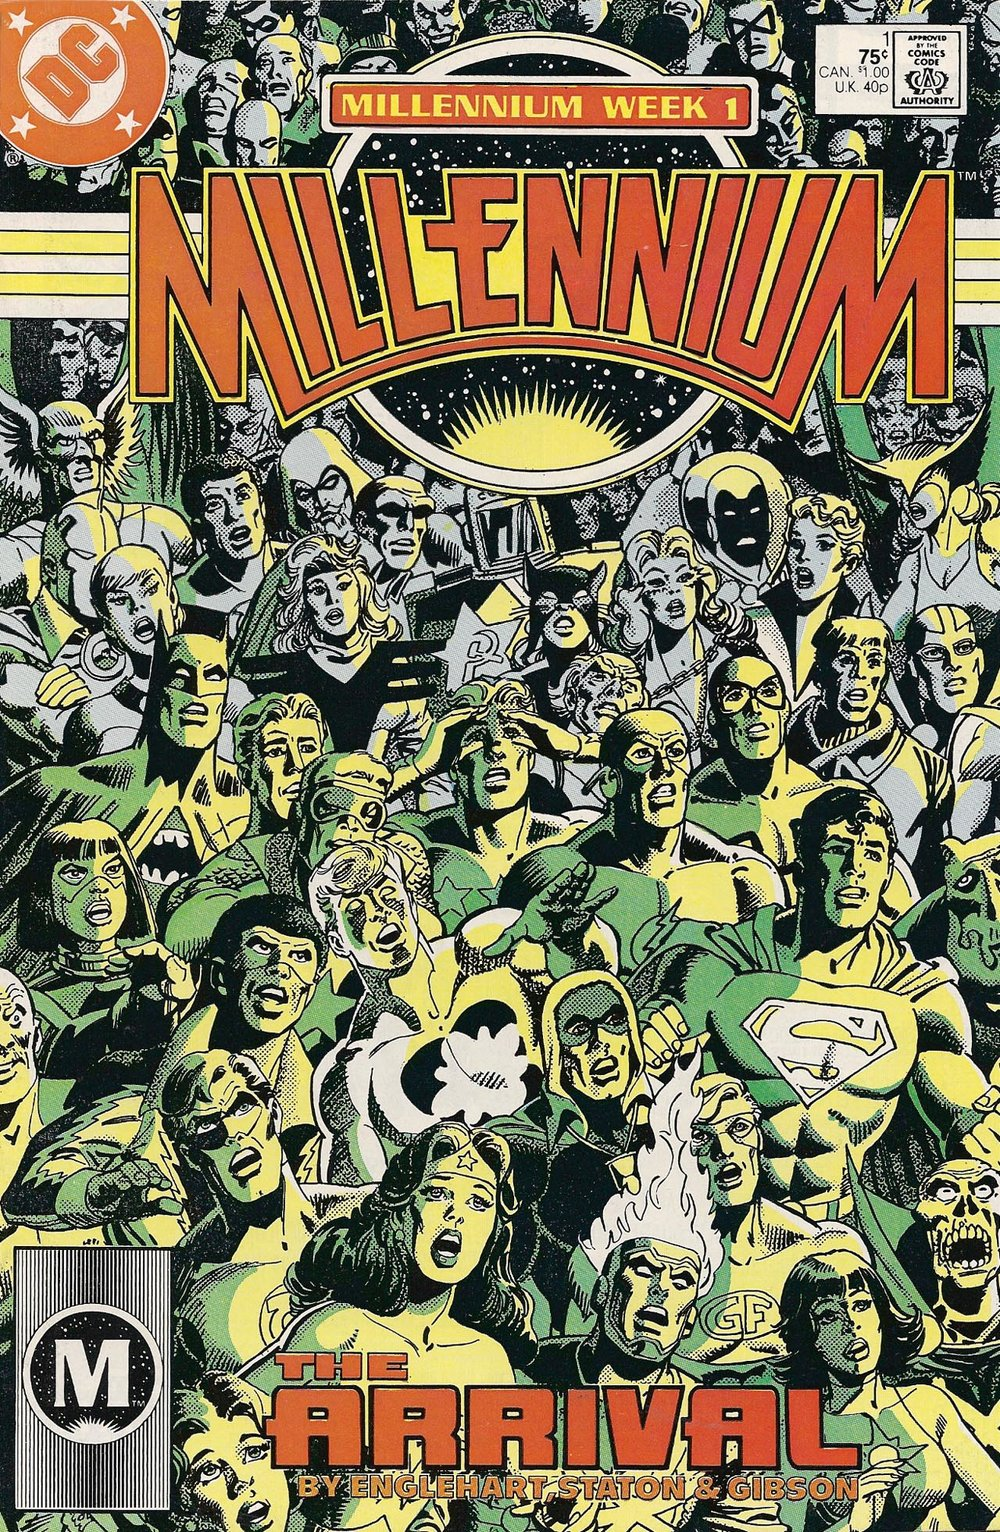 Millennium (1988) #1 cover penciled by Joe Staton & inked by Bruce Patterson.